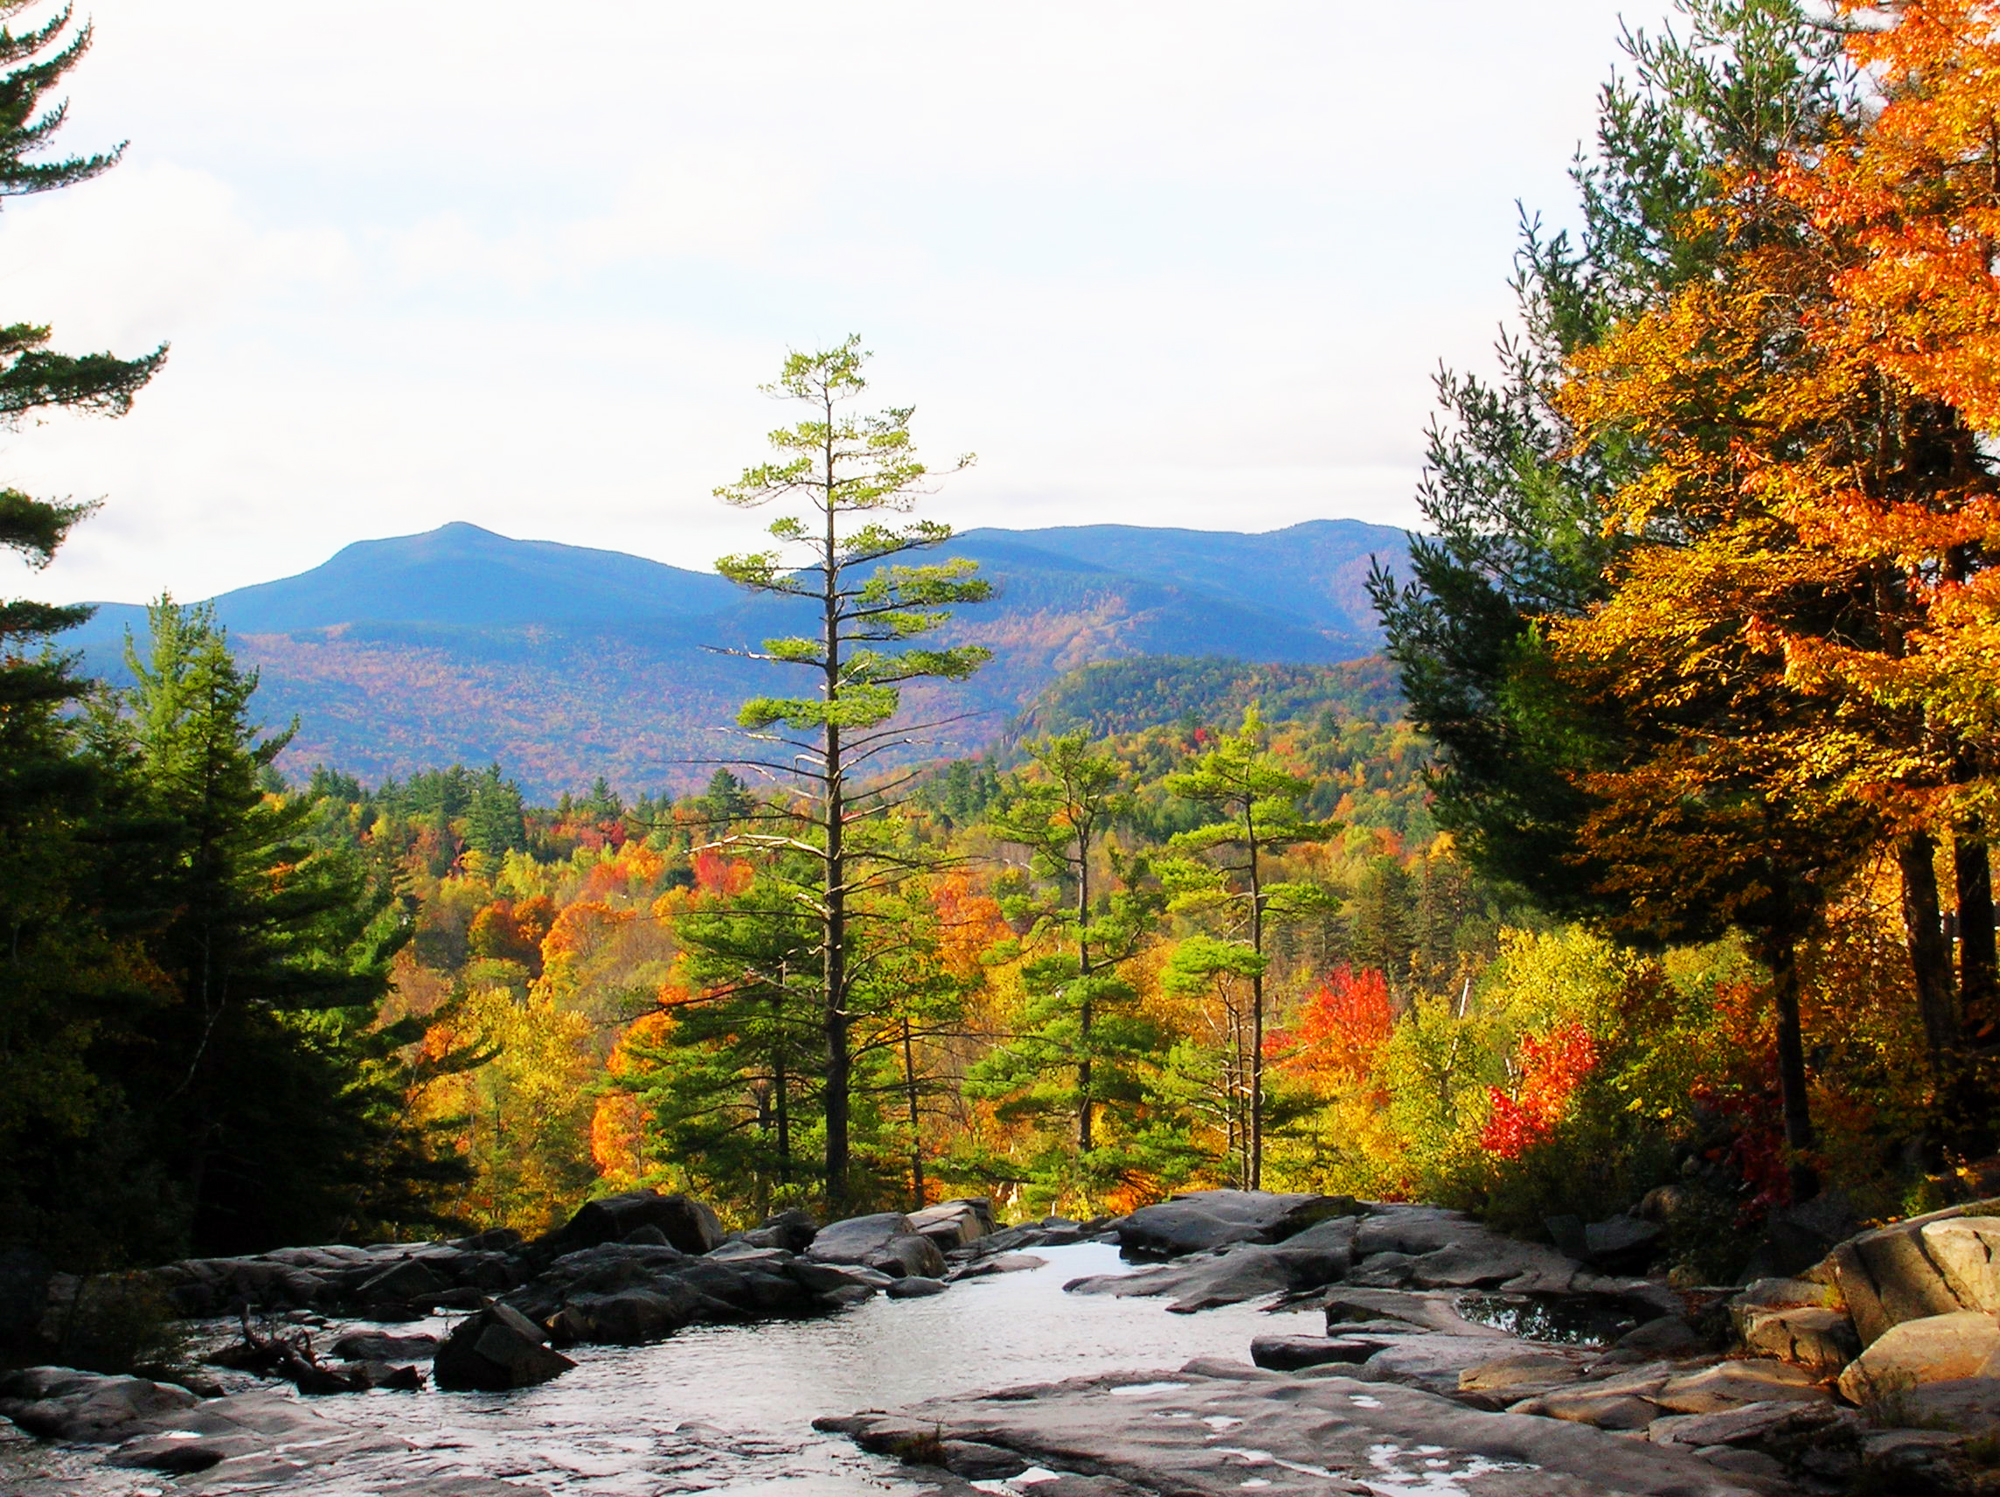 There are no shortage of scenic views accentuated by the turning of the leaves in New Hampshire. Craig Davis/Craigslegz.com